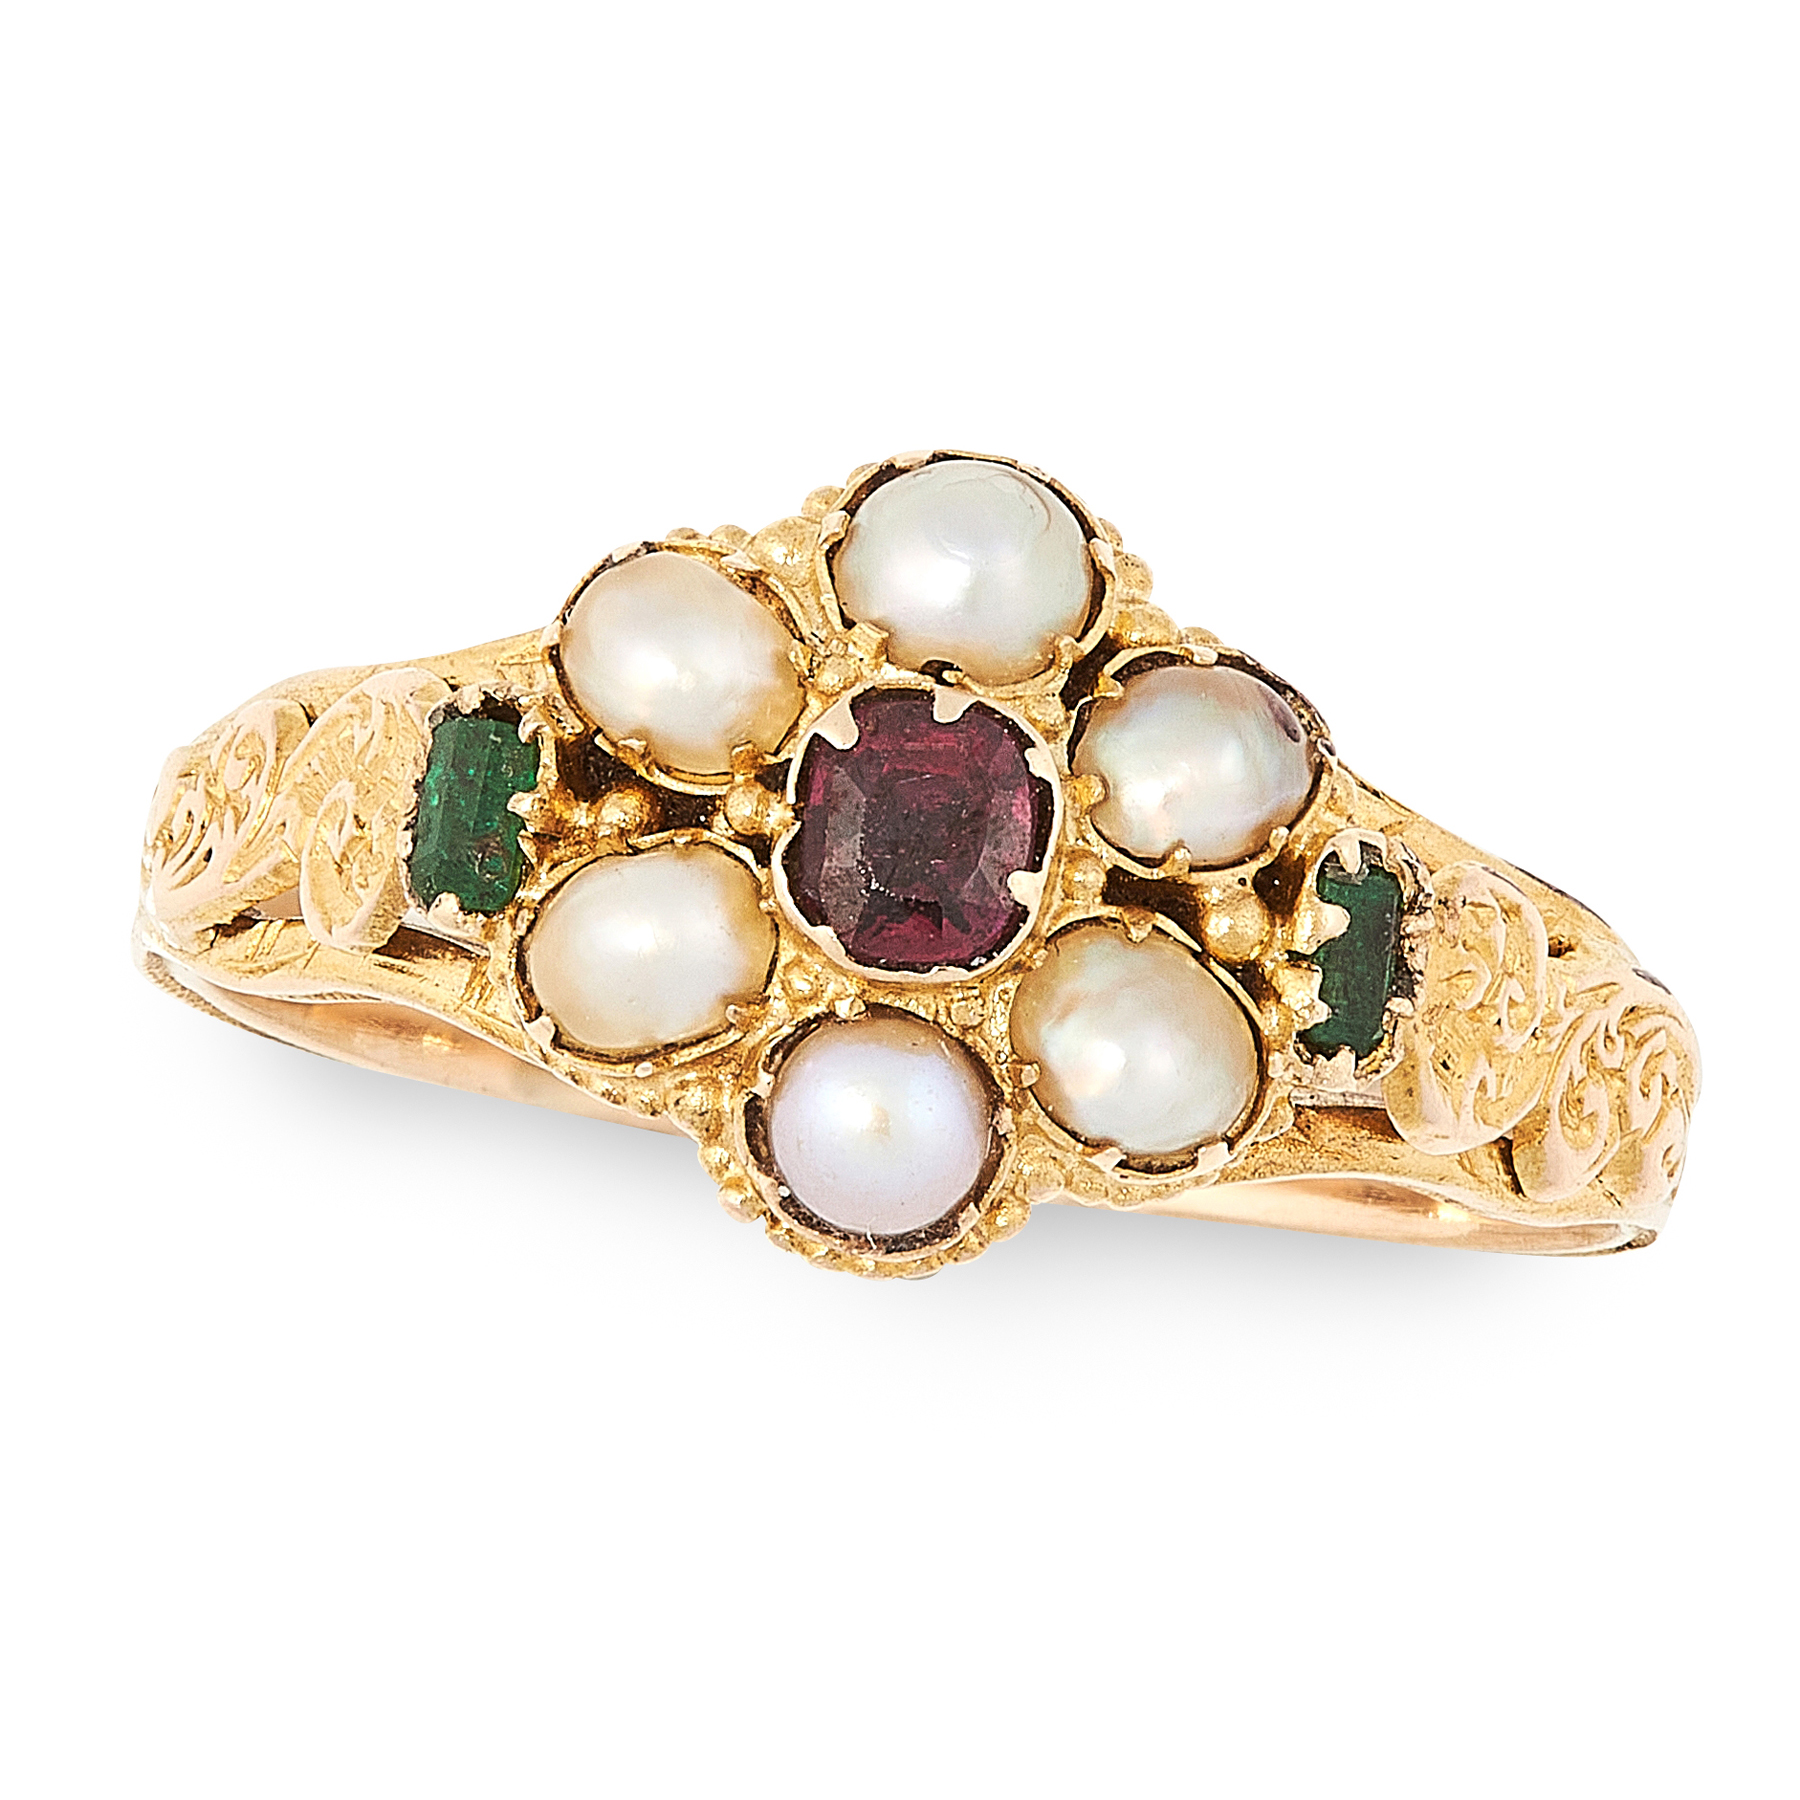 AN ANTIQUE VICTORIAN RUBY, EMERALD AND PEARL RING, 19TH CENTURY in 15ct yellow gold, set with a